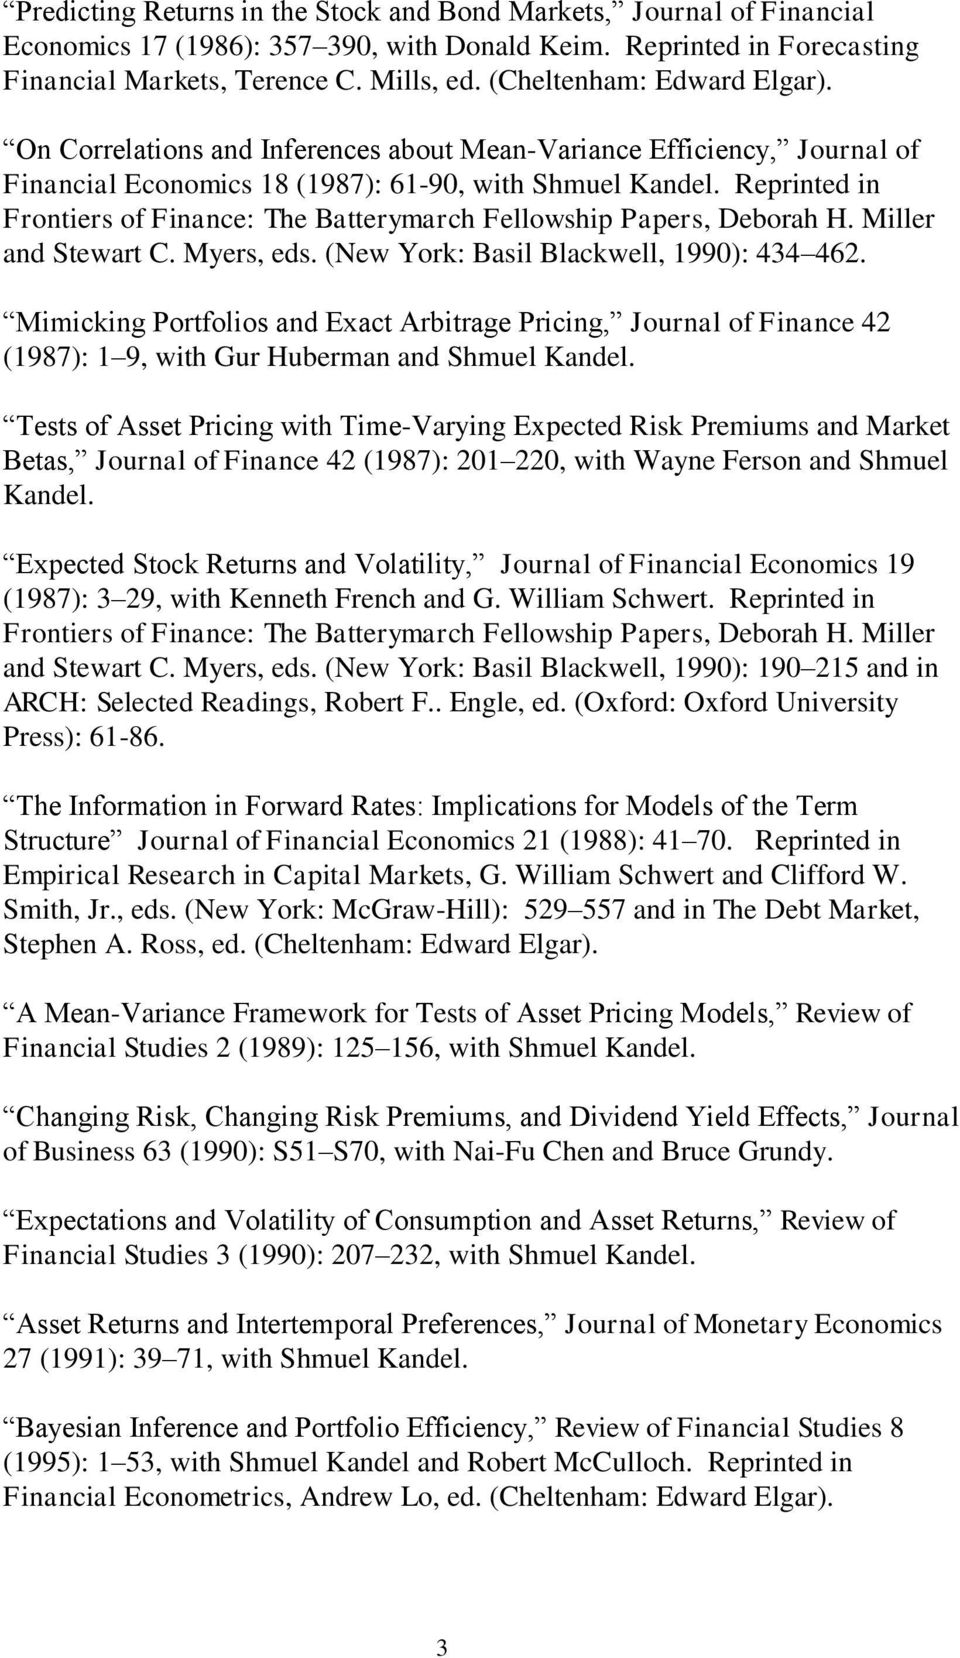 Reprinted in Frontiers of Finance: The Batterymarch Fellowship Papers, Deborah H. Miller and Stewart C. Myers, eds. (New York: Basil Blackwell, 1990): 434 462.